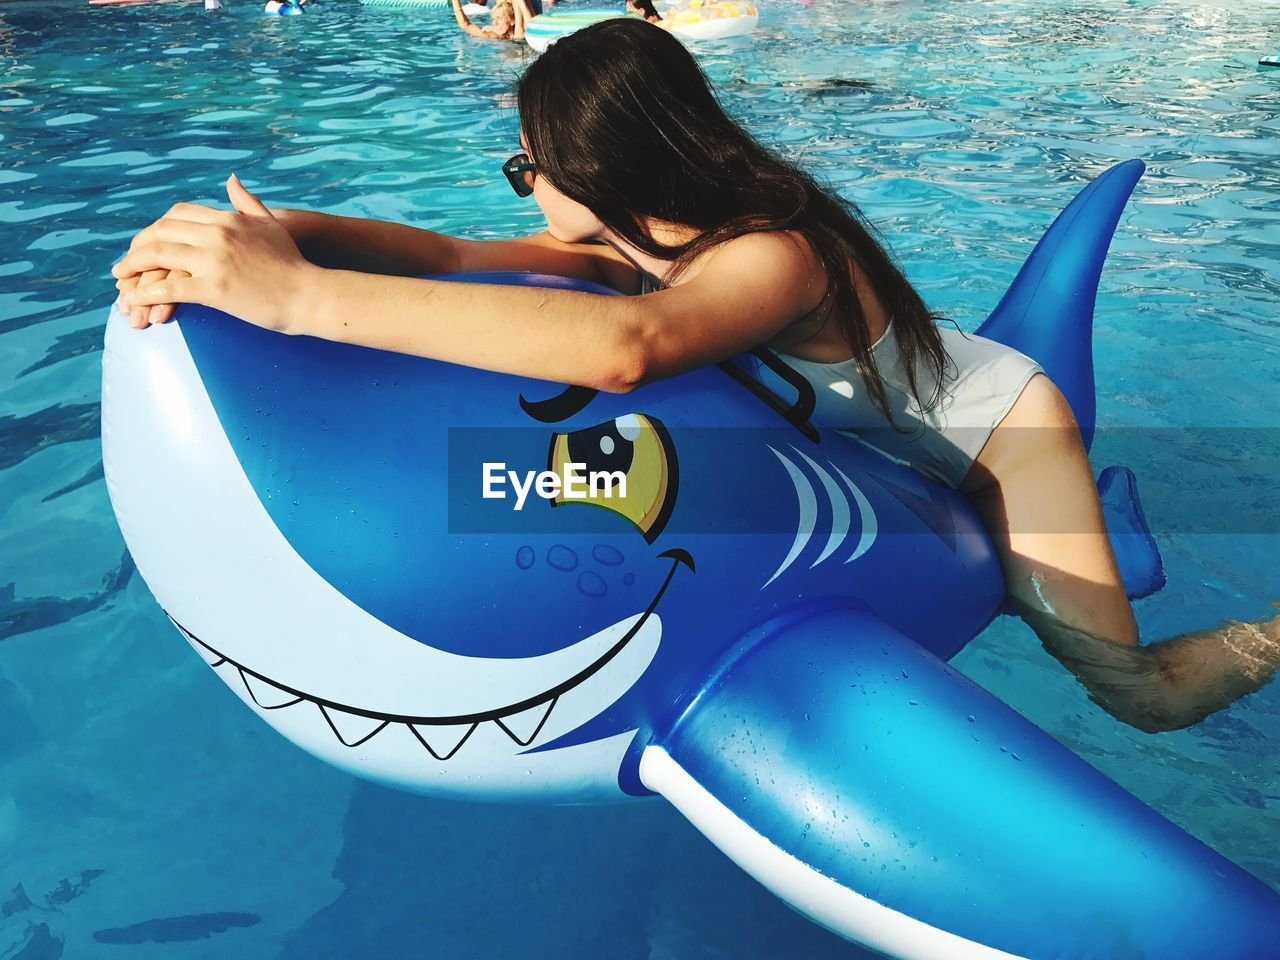 water, swimming pool, real people, leisure activity, inflatable, one person, inflatable ring, vacations, lifestyles, pool raft, young women, young adult, bikini, day, outdoors, full length, blue, swimming, nature, sea, beautiful woman